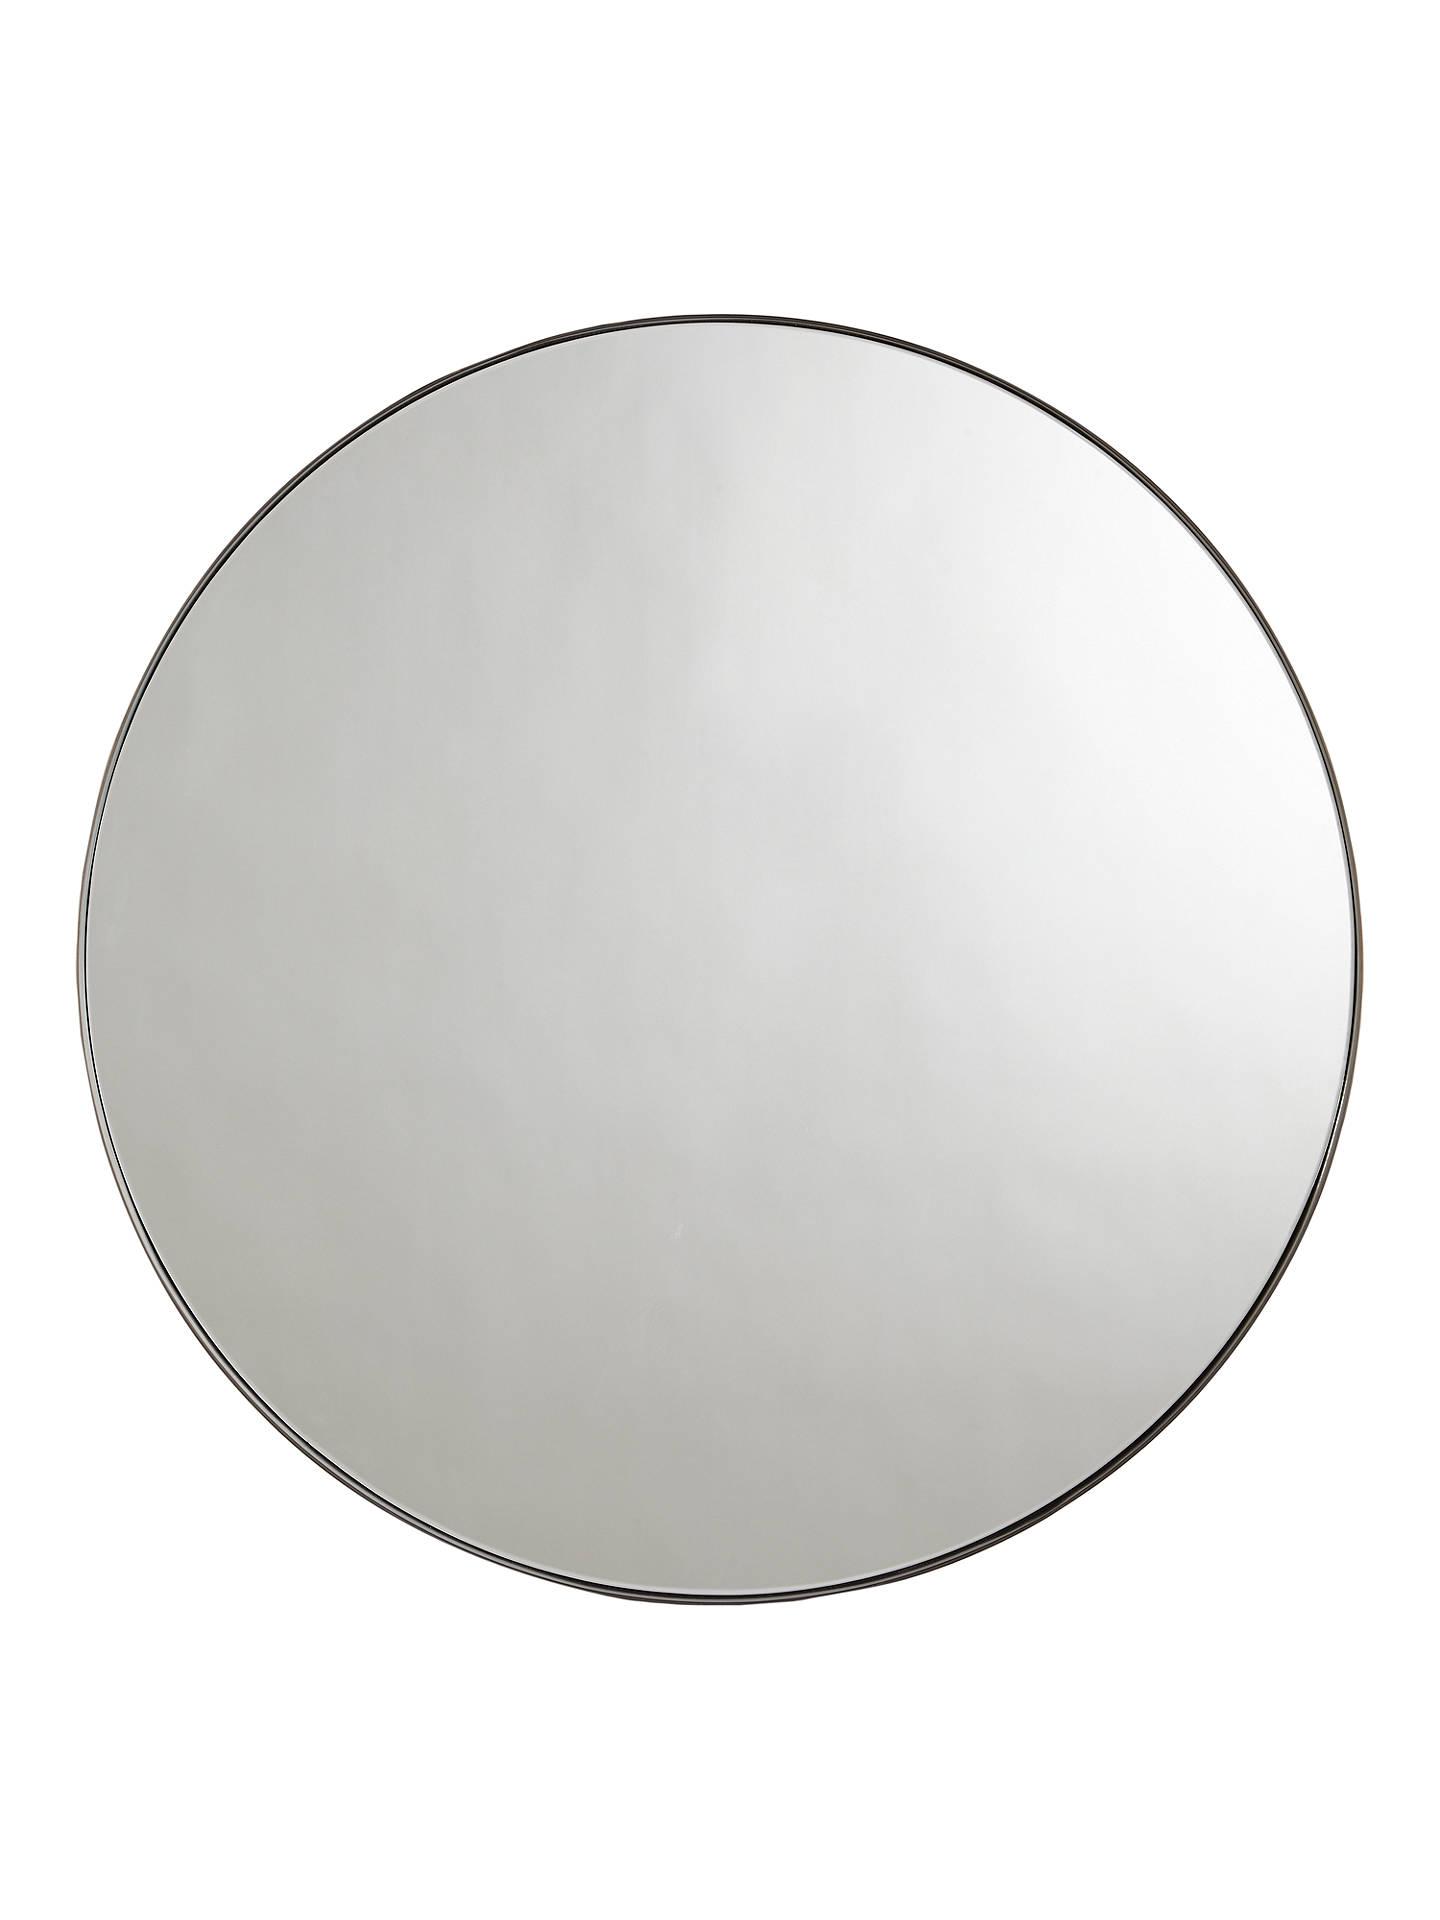 BuyJohn Lewis & Partners Cliffe Large Round Mirror, Dia.92cm, Black Online at johnlewis.com